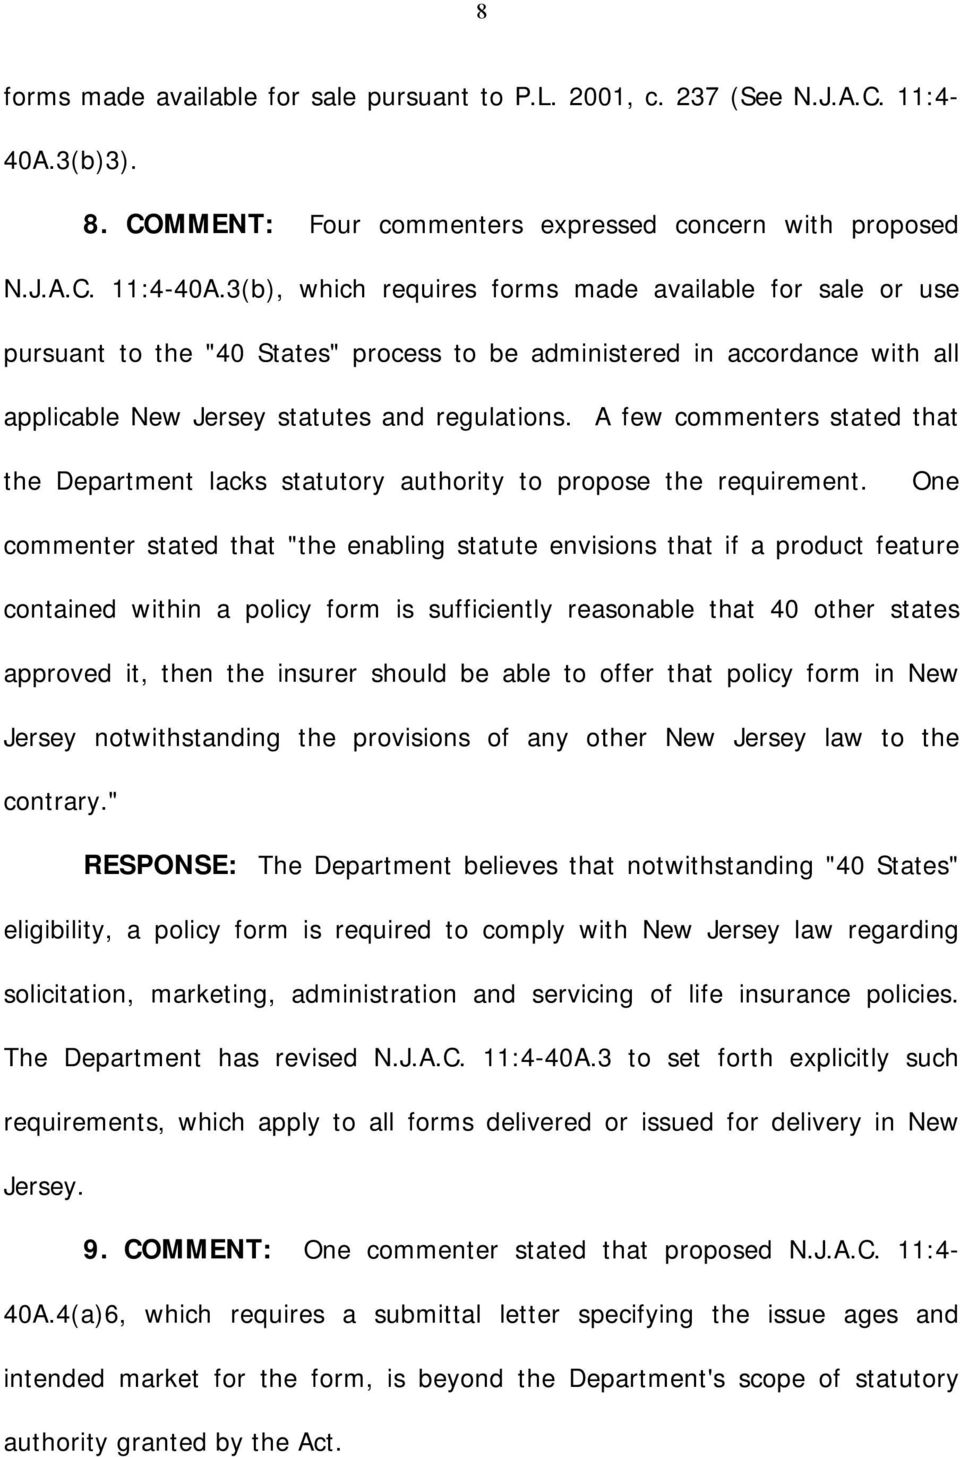 "3(b), which requires forms made available for sale or use pursuant to the ""40 States"" process to be administered in accordance with all applicable New Jersey statutes and regulations."